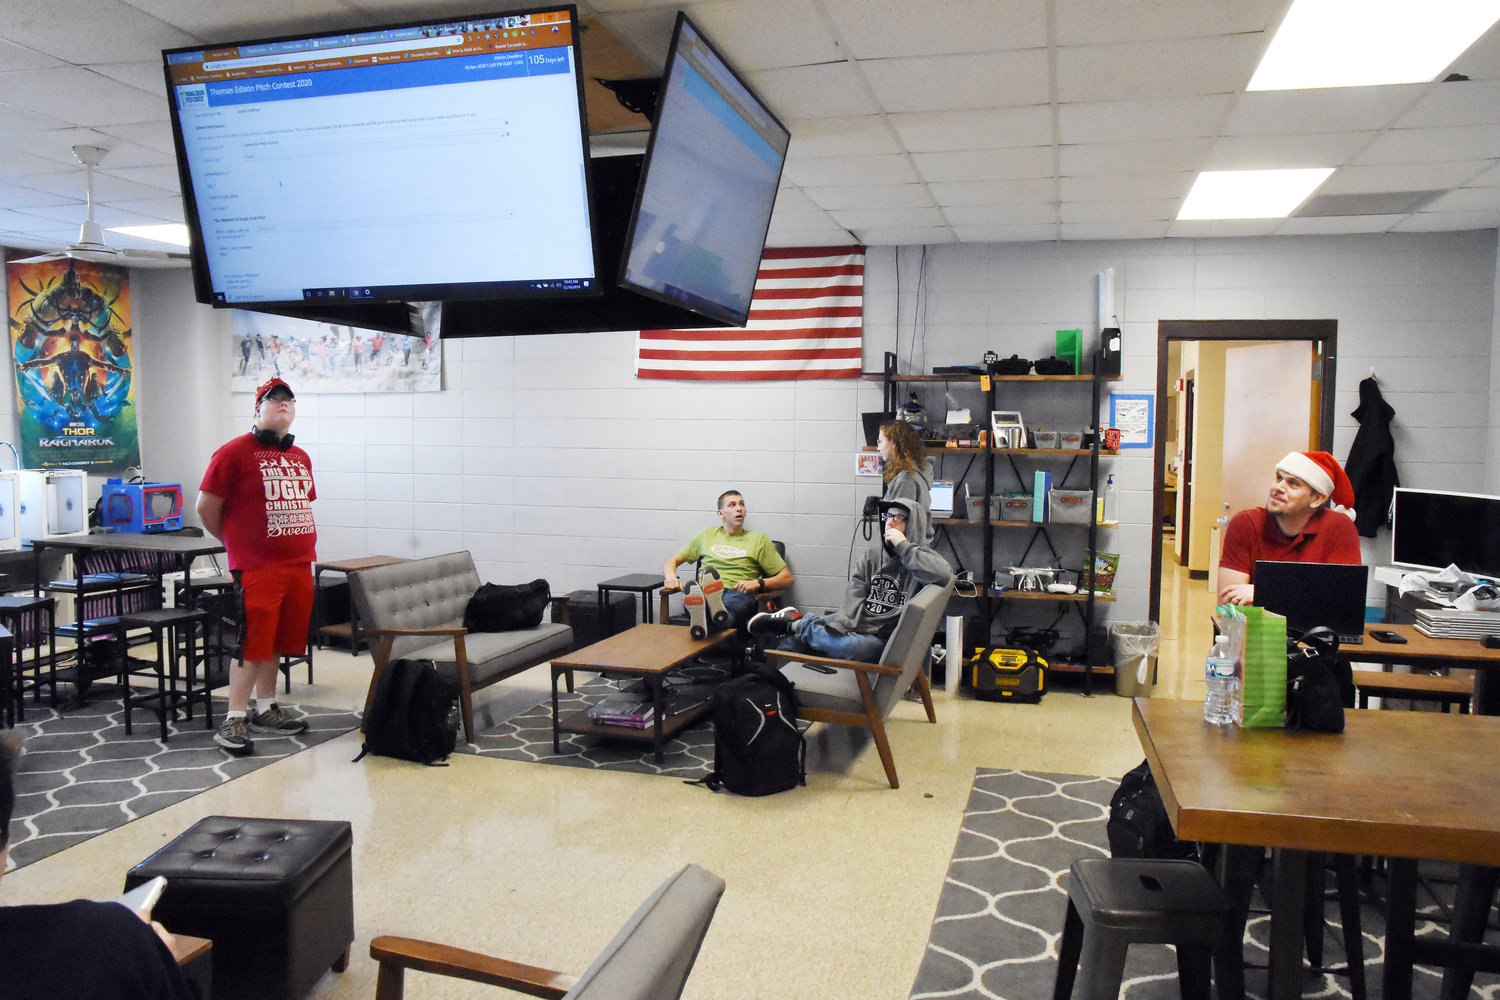 Owensville High School science teacher Kevin Lay looks at large-screen monitors in his classroom in December as students prepare a contest entry form. The school's 2018 entry into the Samsung Solve for Tomorrow competition won the national prize of $100,000 worth of technology and electronics equipment including these monitors. Equipment was shared between buildings in the district.